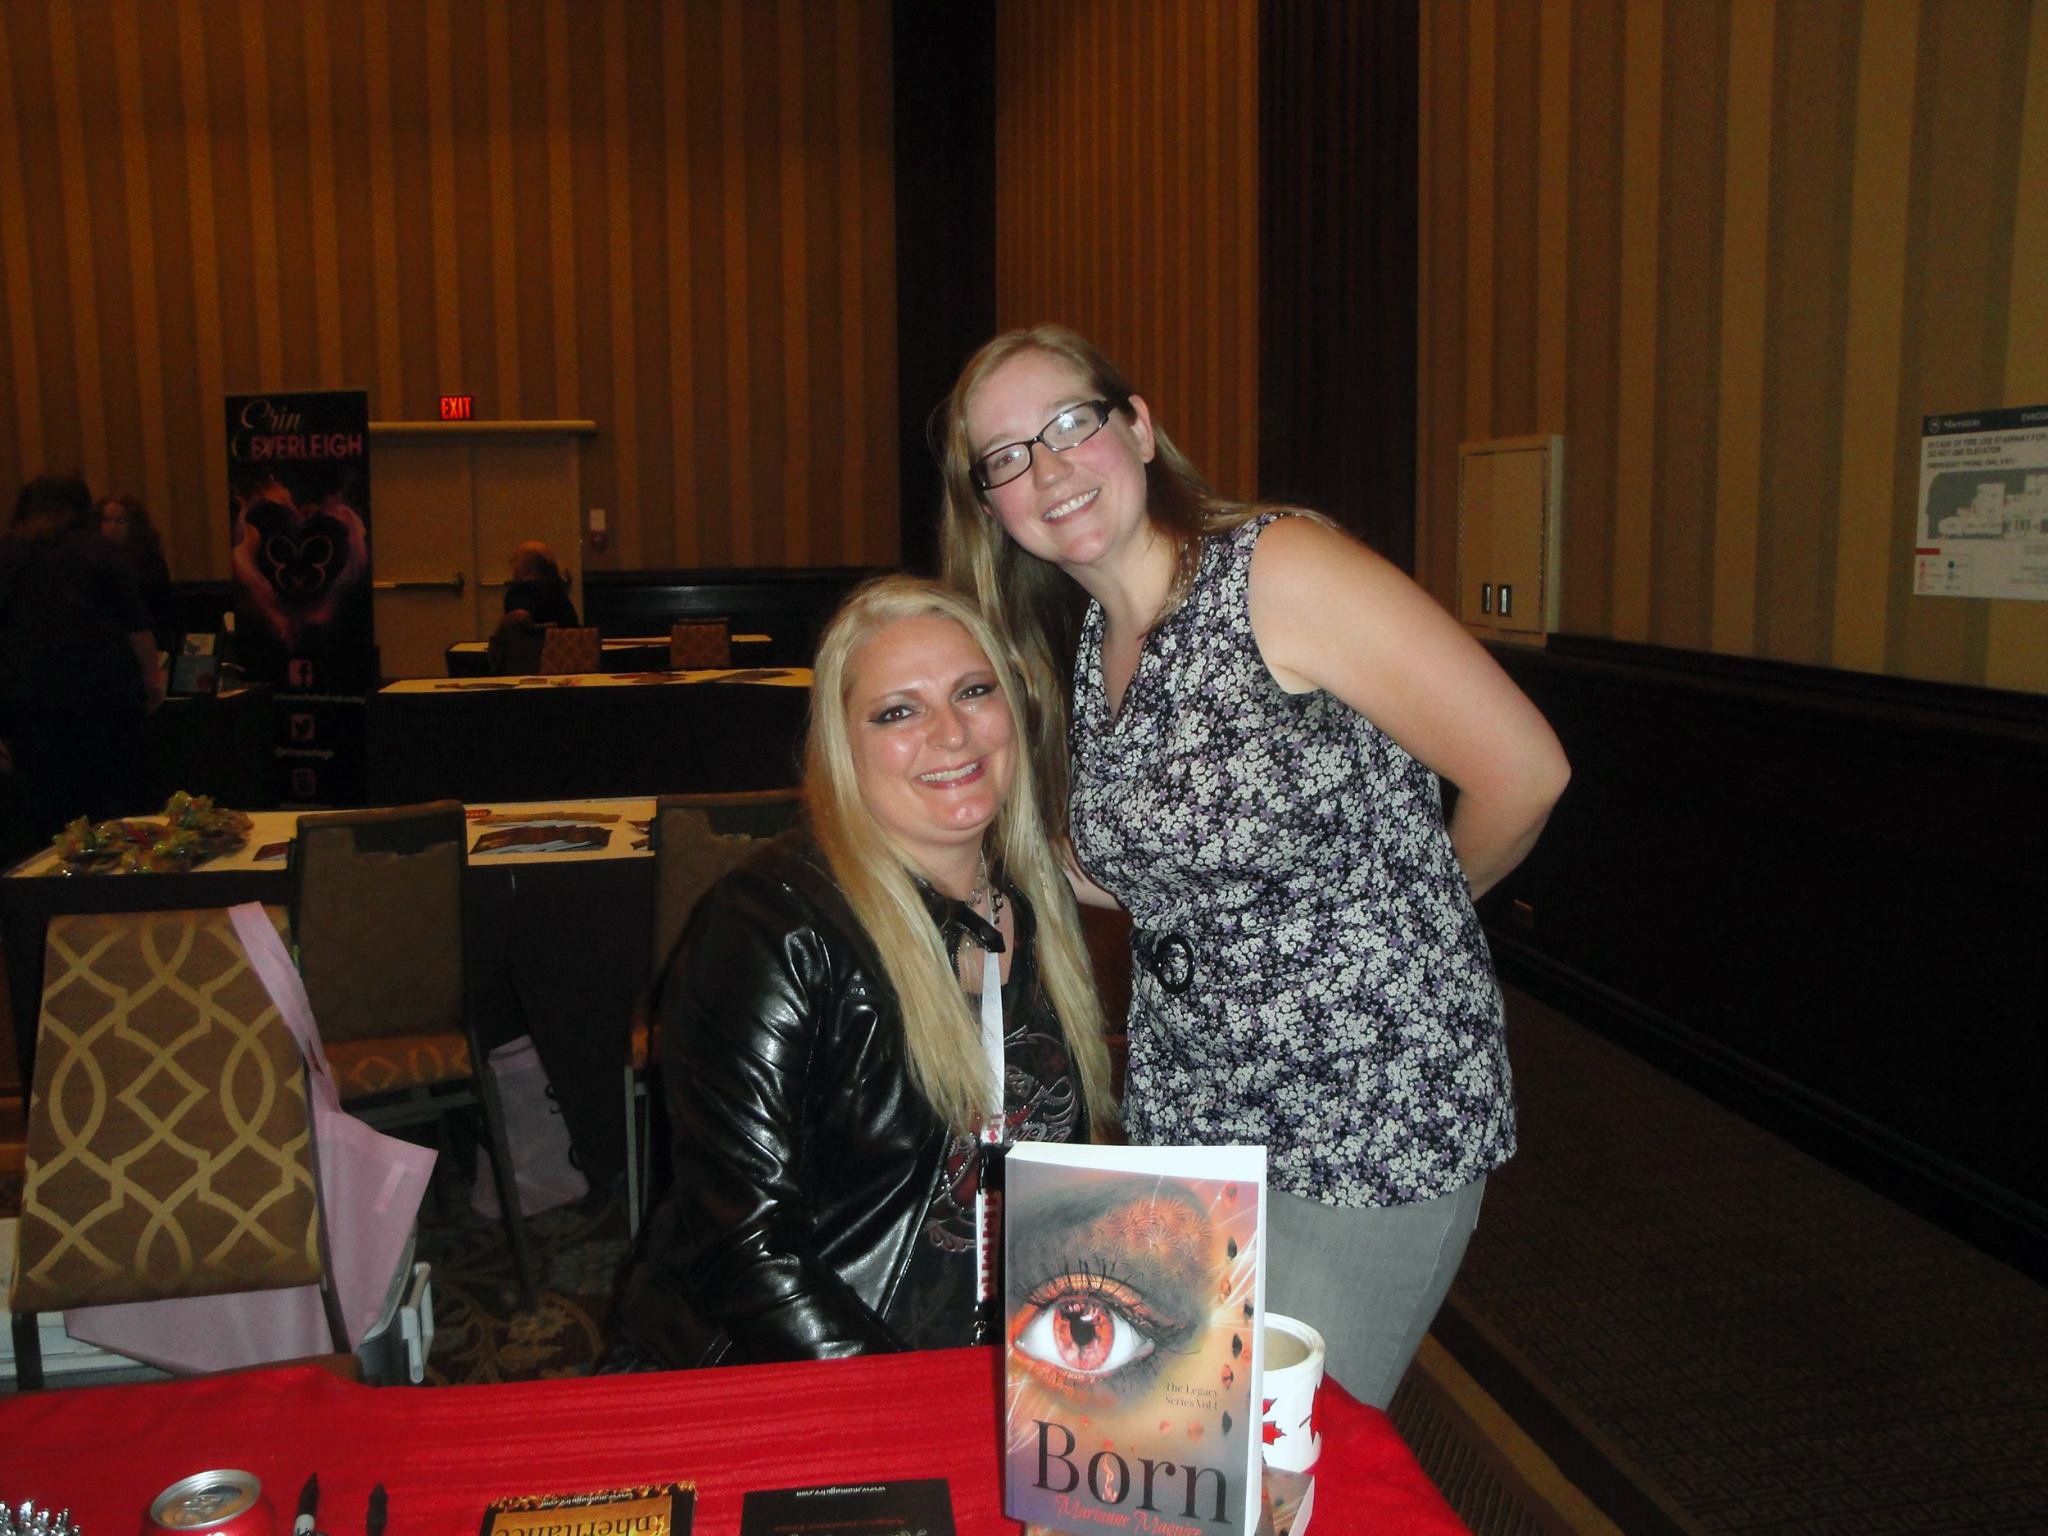 Me and Erin #SITC205